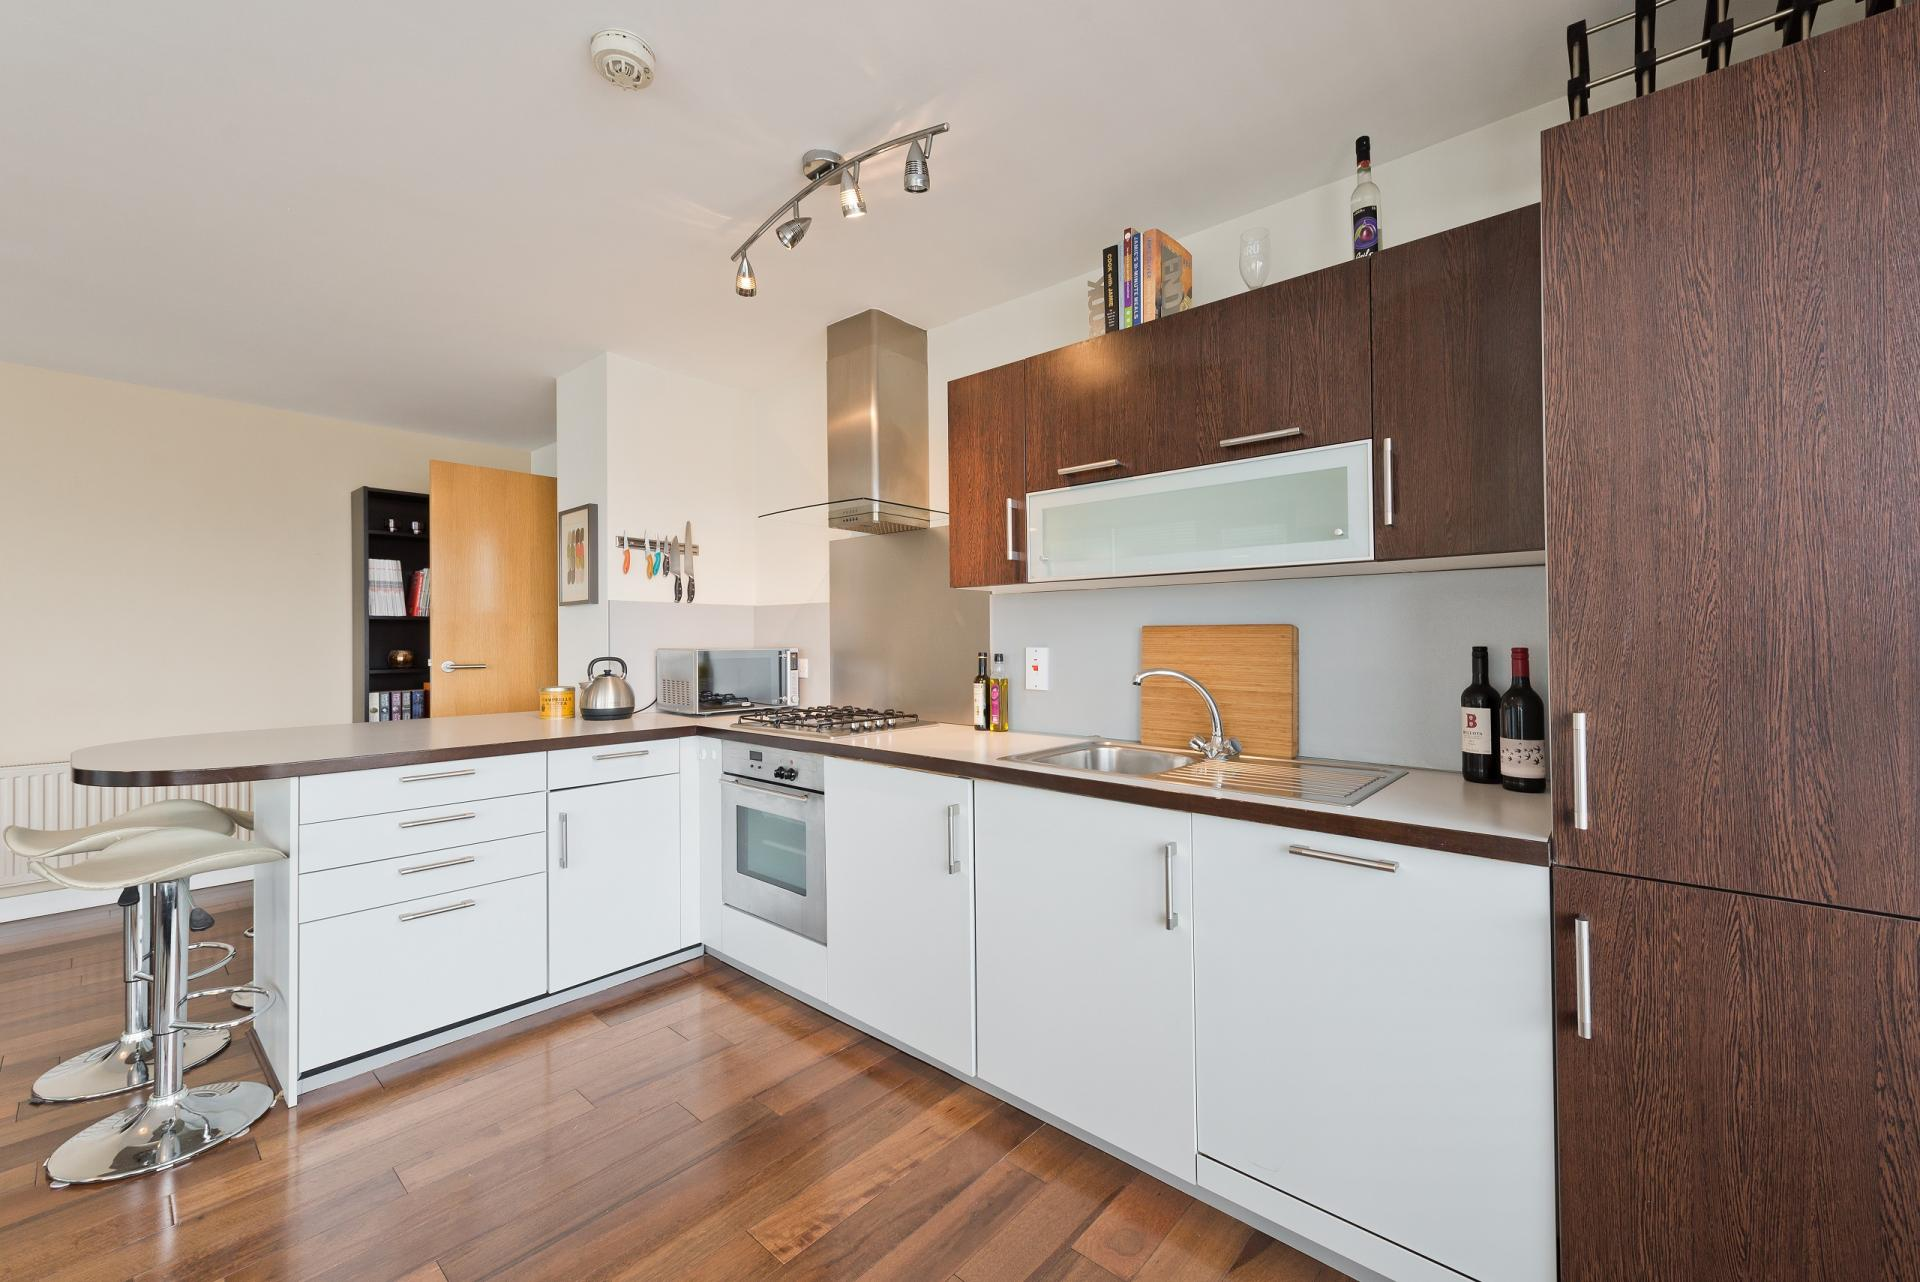 Kitchen at Butlers Court Apartments, North Wall, Dublin